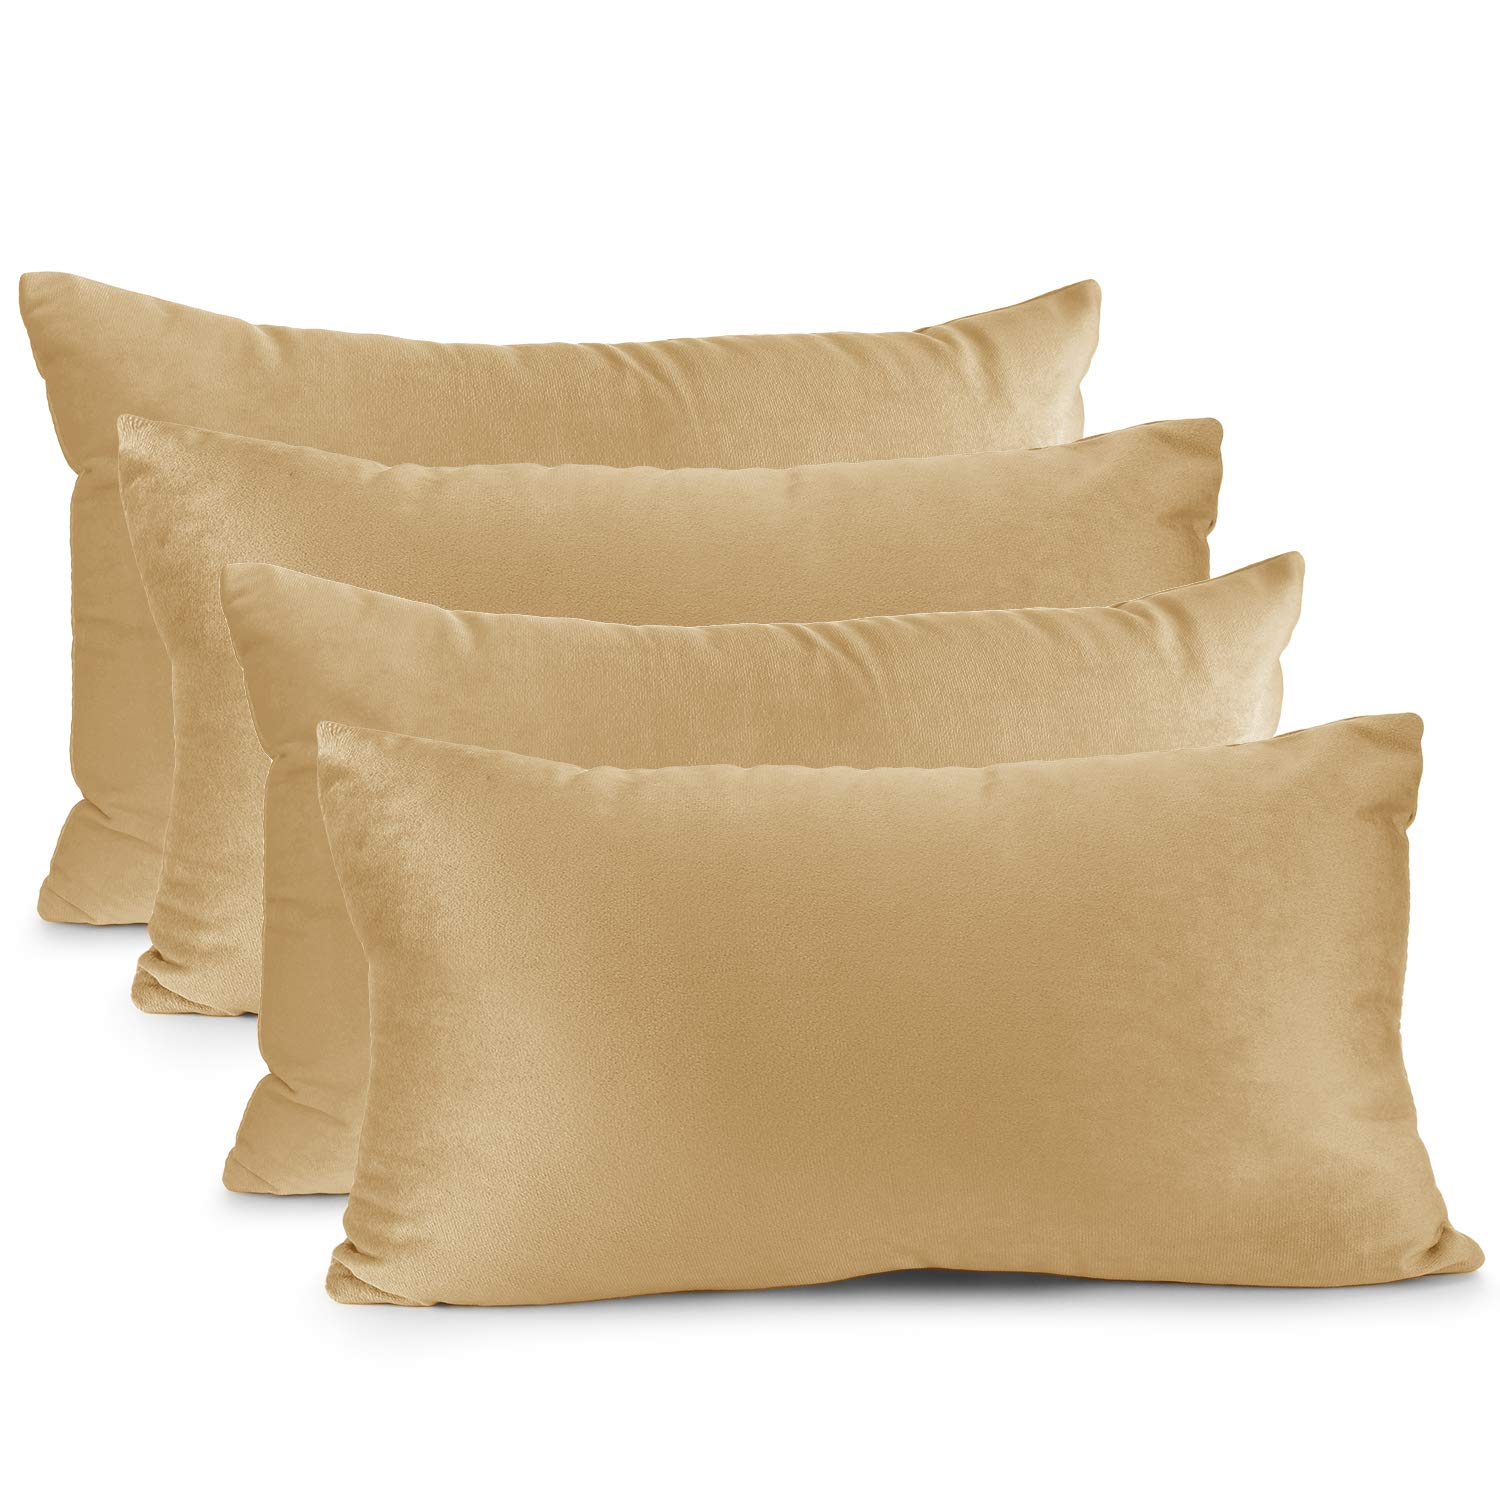 """Nestl Bedding Throw Pillow Cover 12"""" x 20"""" Soft Square Decorative Throw Pillow Covers Cozy Velvet Cushion Case for Sofa Couch Bedroom, Set of 4, Camel Gold"""